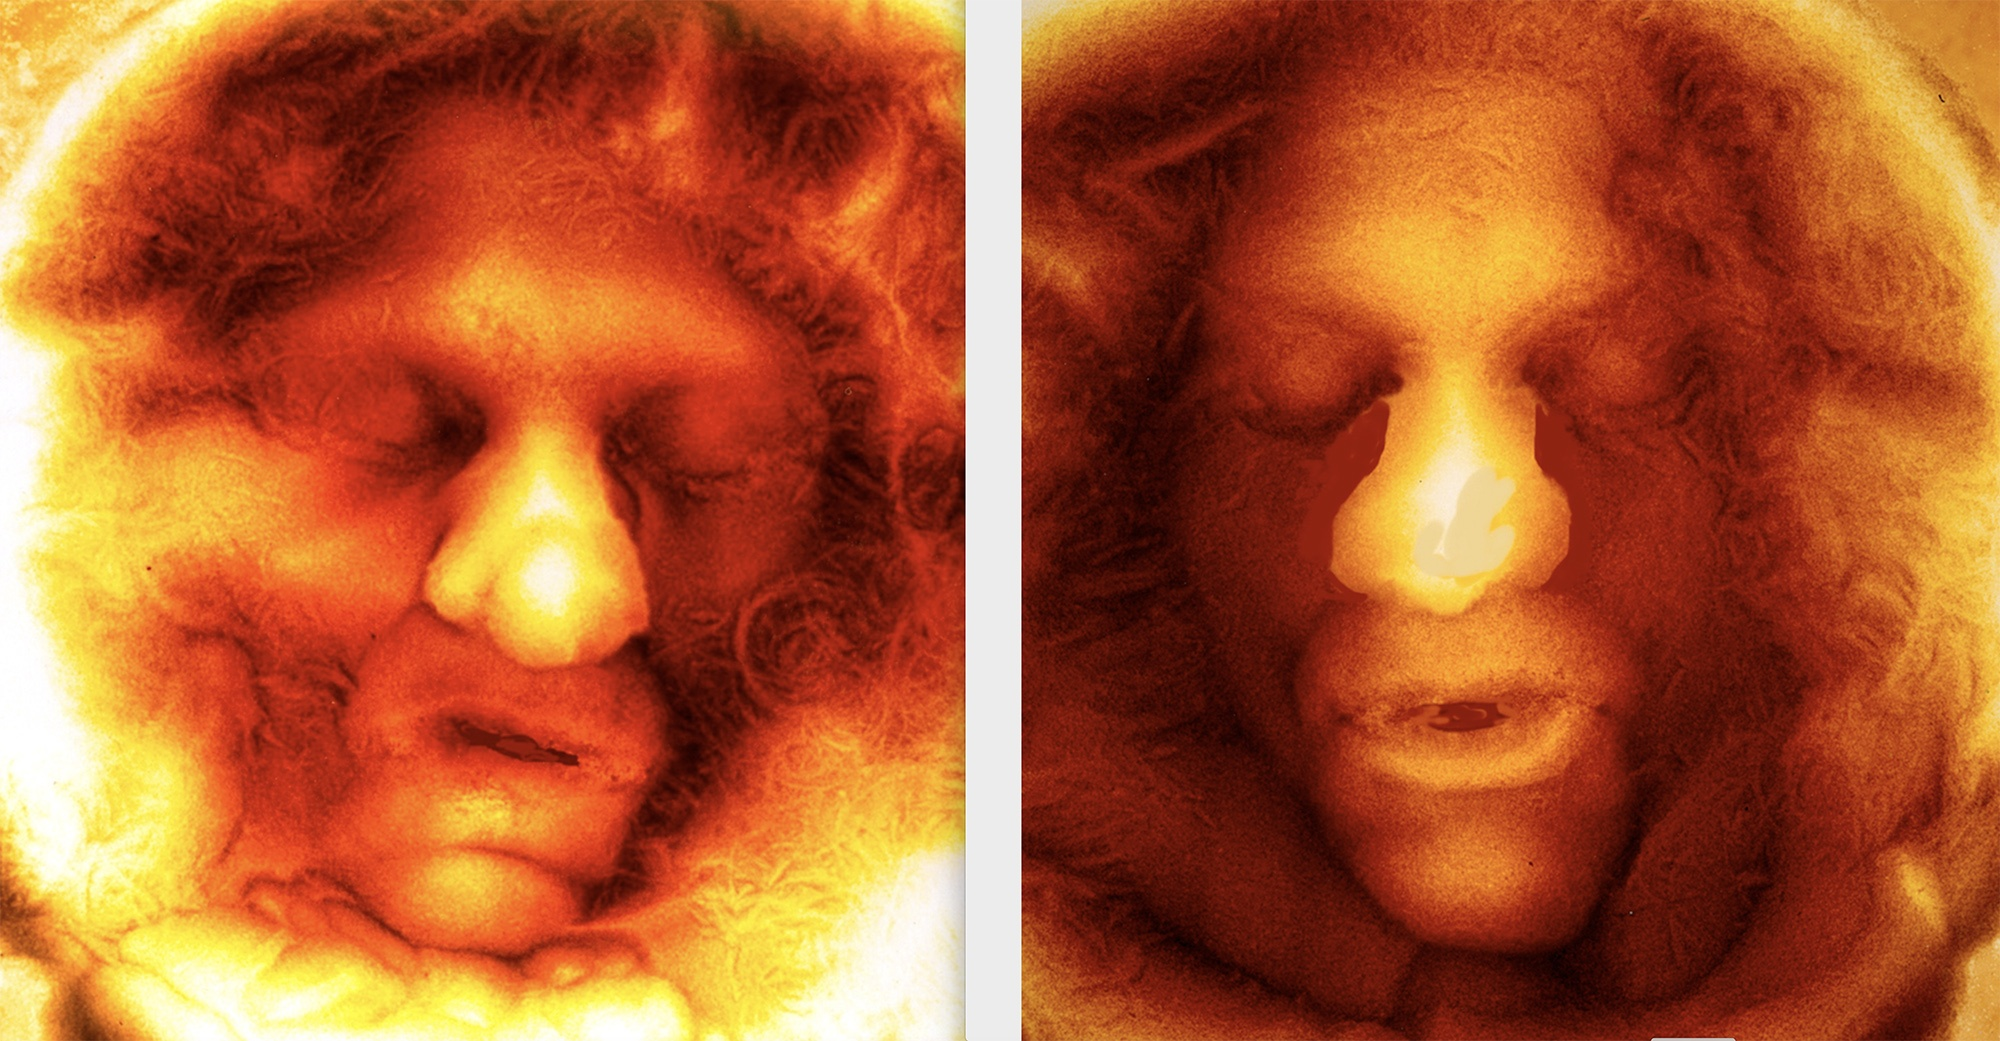 Two imprints of the artist's face made in sugar on back lit glass.